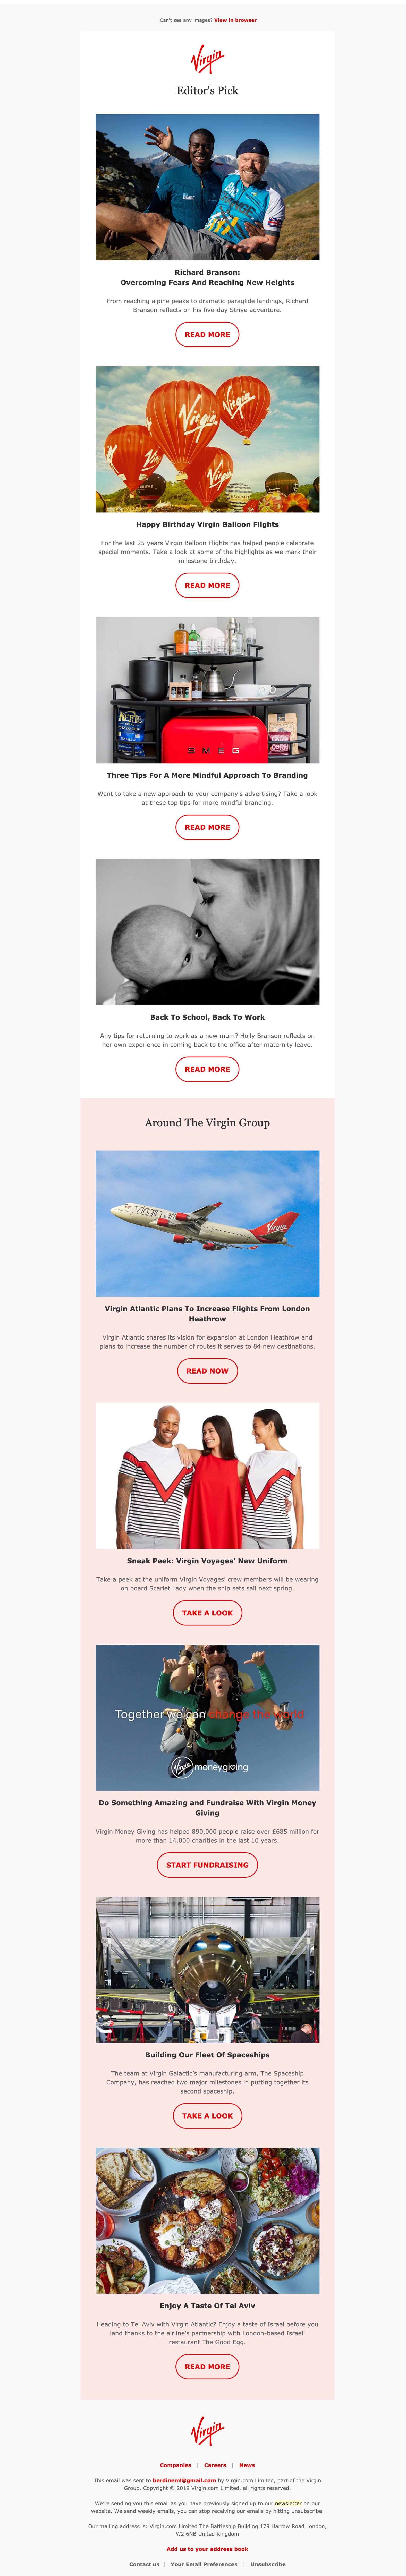 Virgin Airline's email